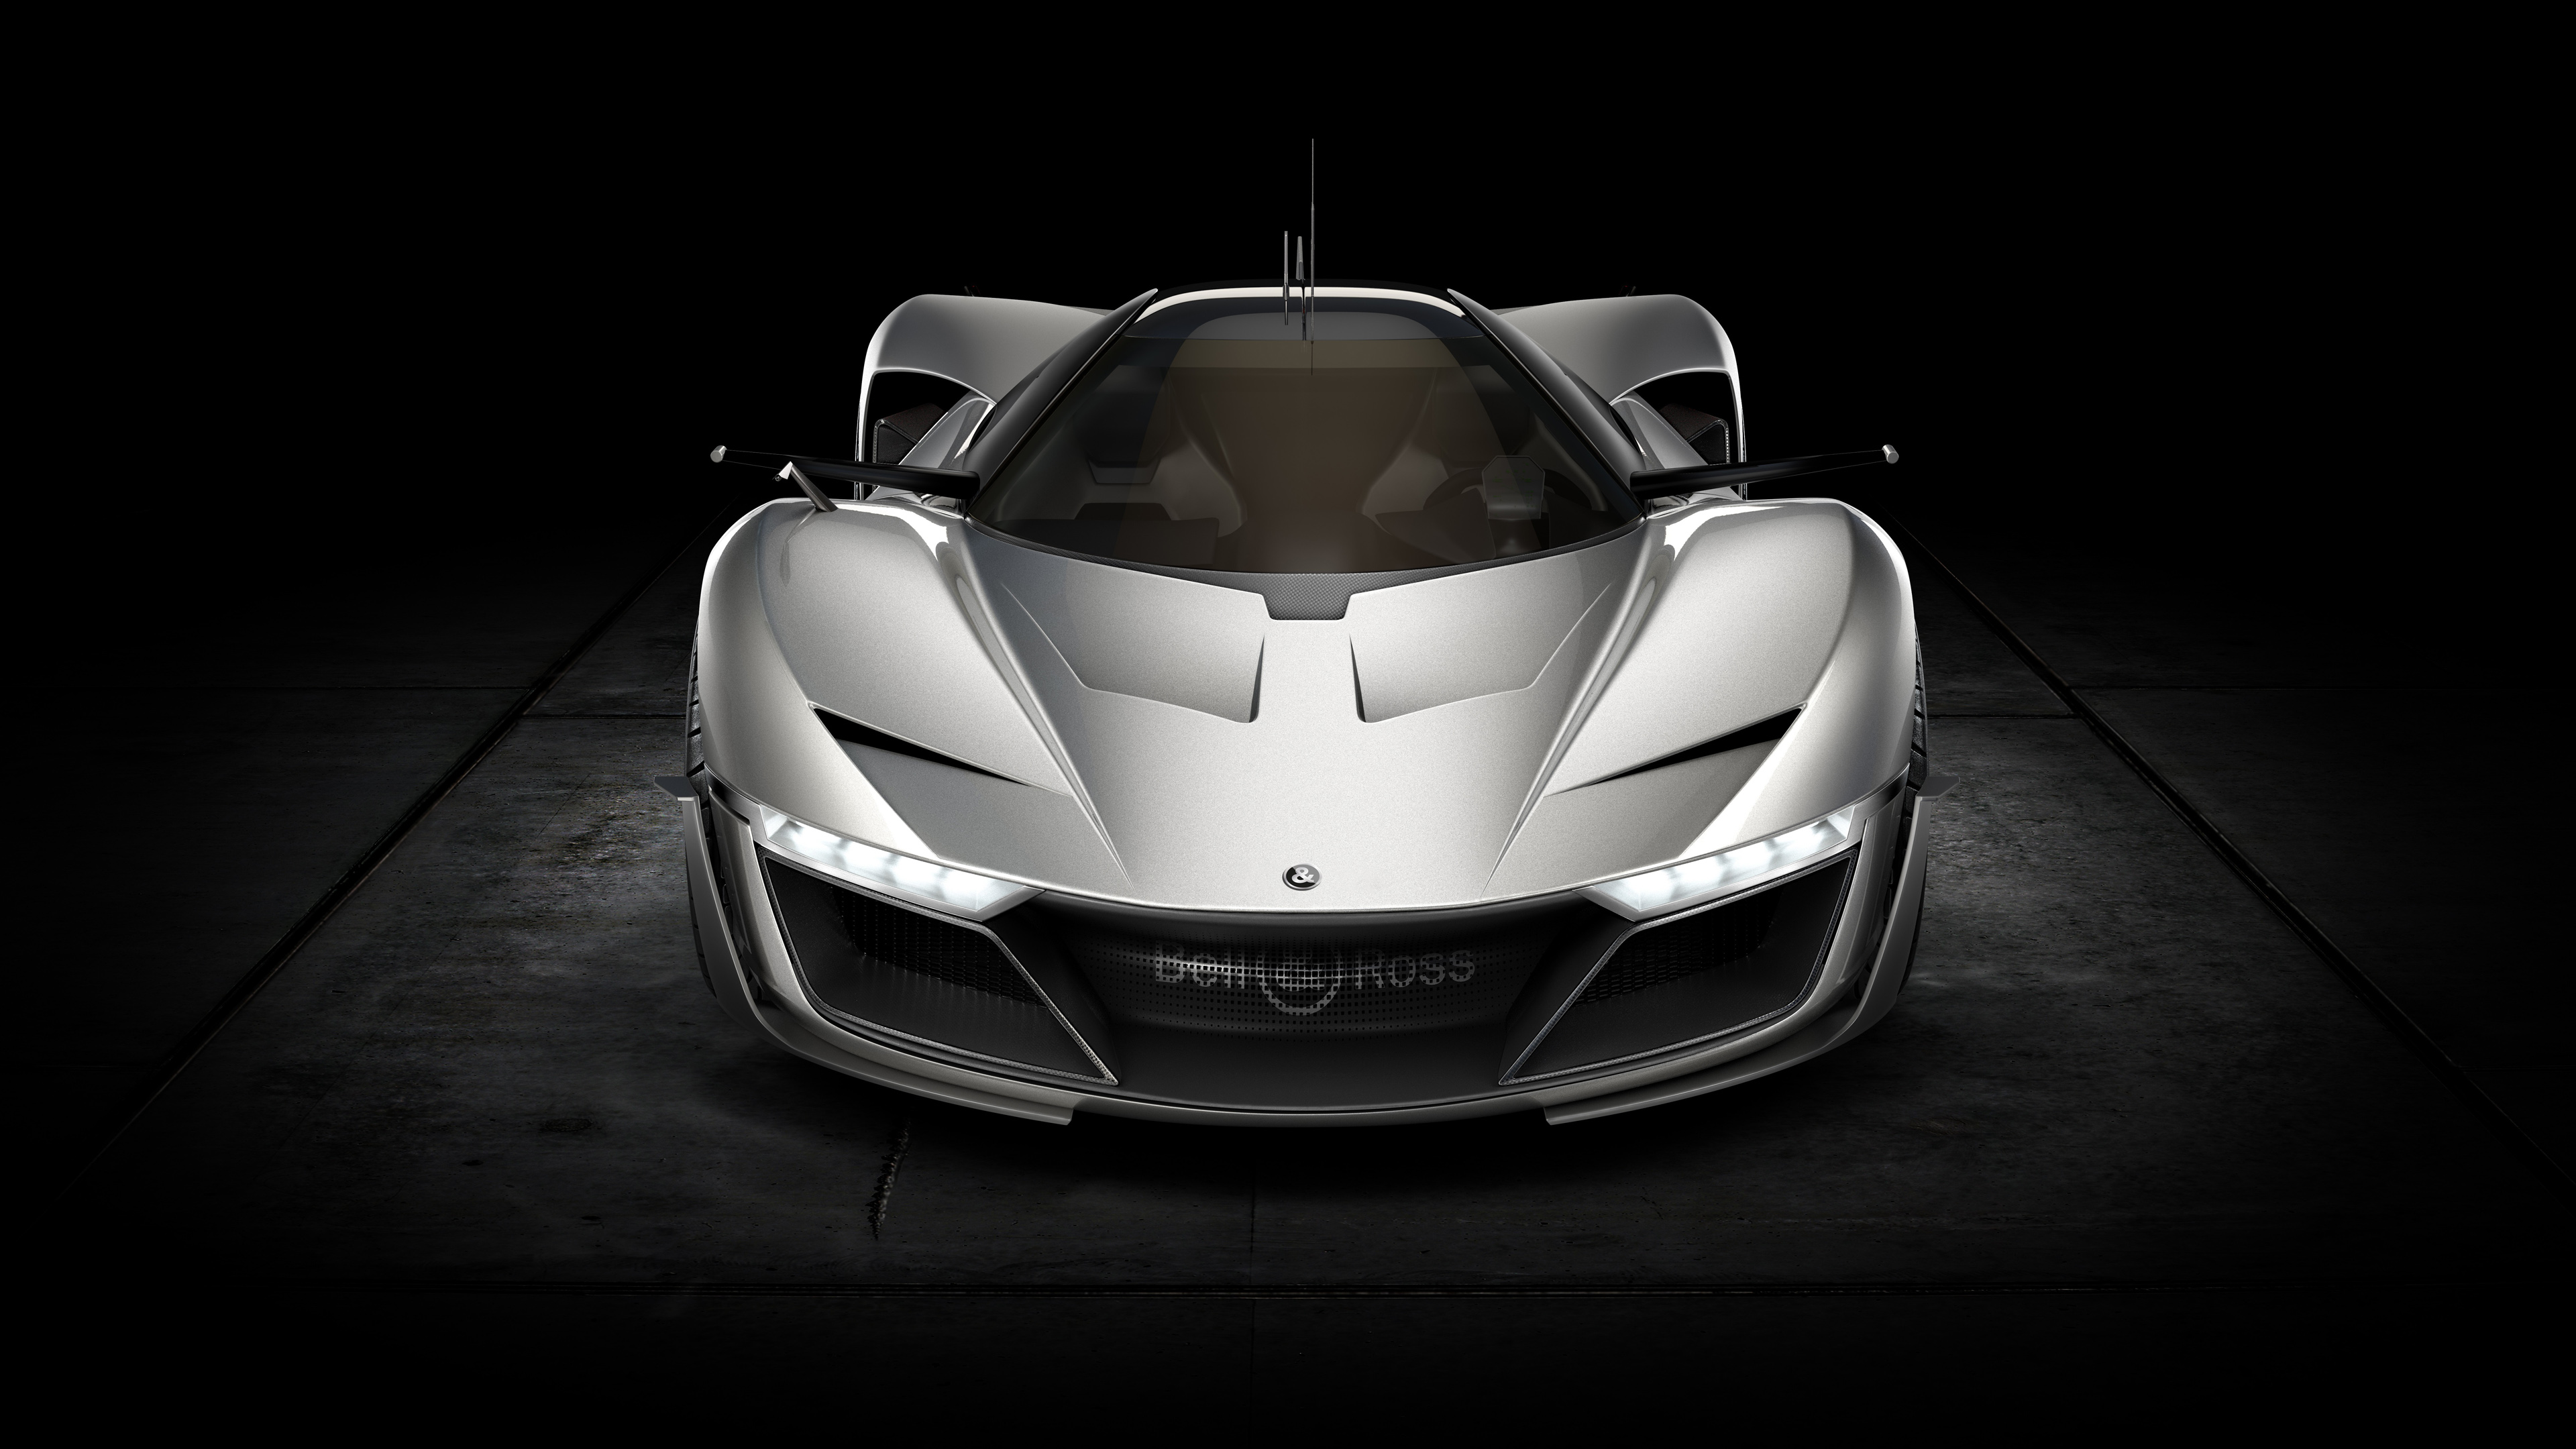 Image Result For Great Cars Wallpapers For Windows Full Hd Wallpapers P Free Download For Pc Ultra Hd Pictures Hd Wallpapers P Widescreen For Mobile Cars Wallpapers For Windows For Mobile Wallpaper